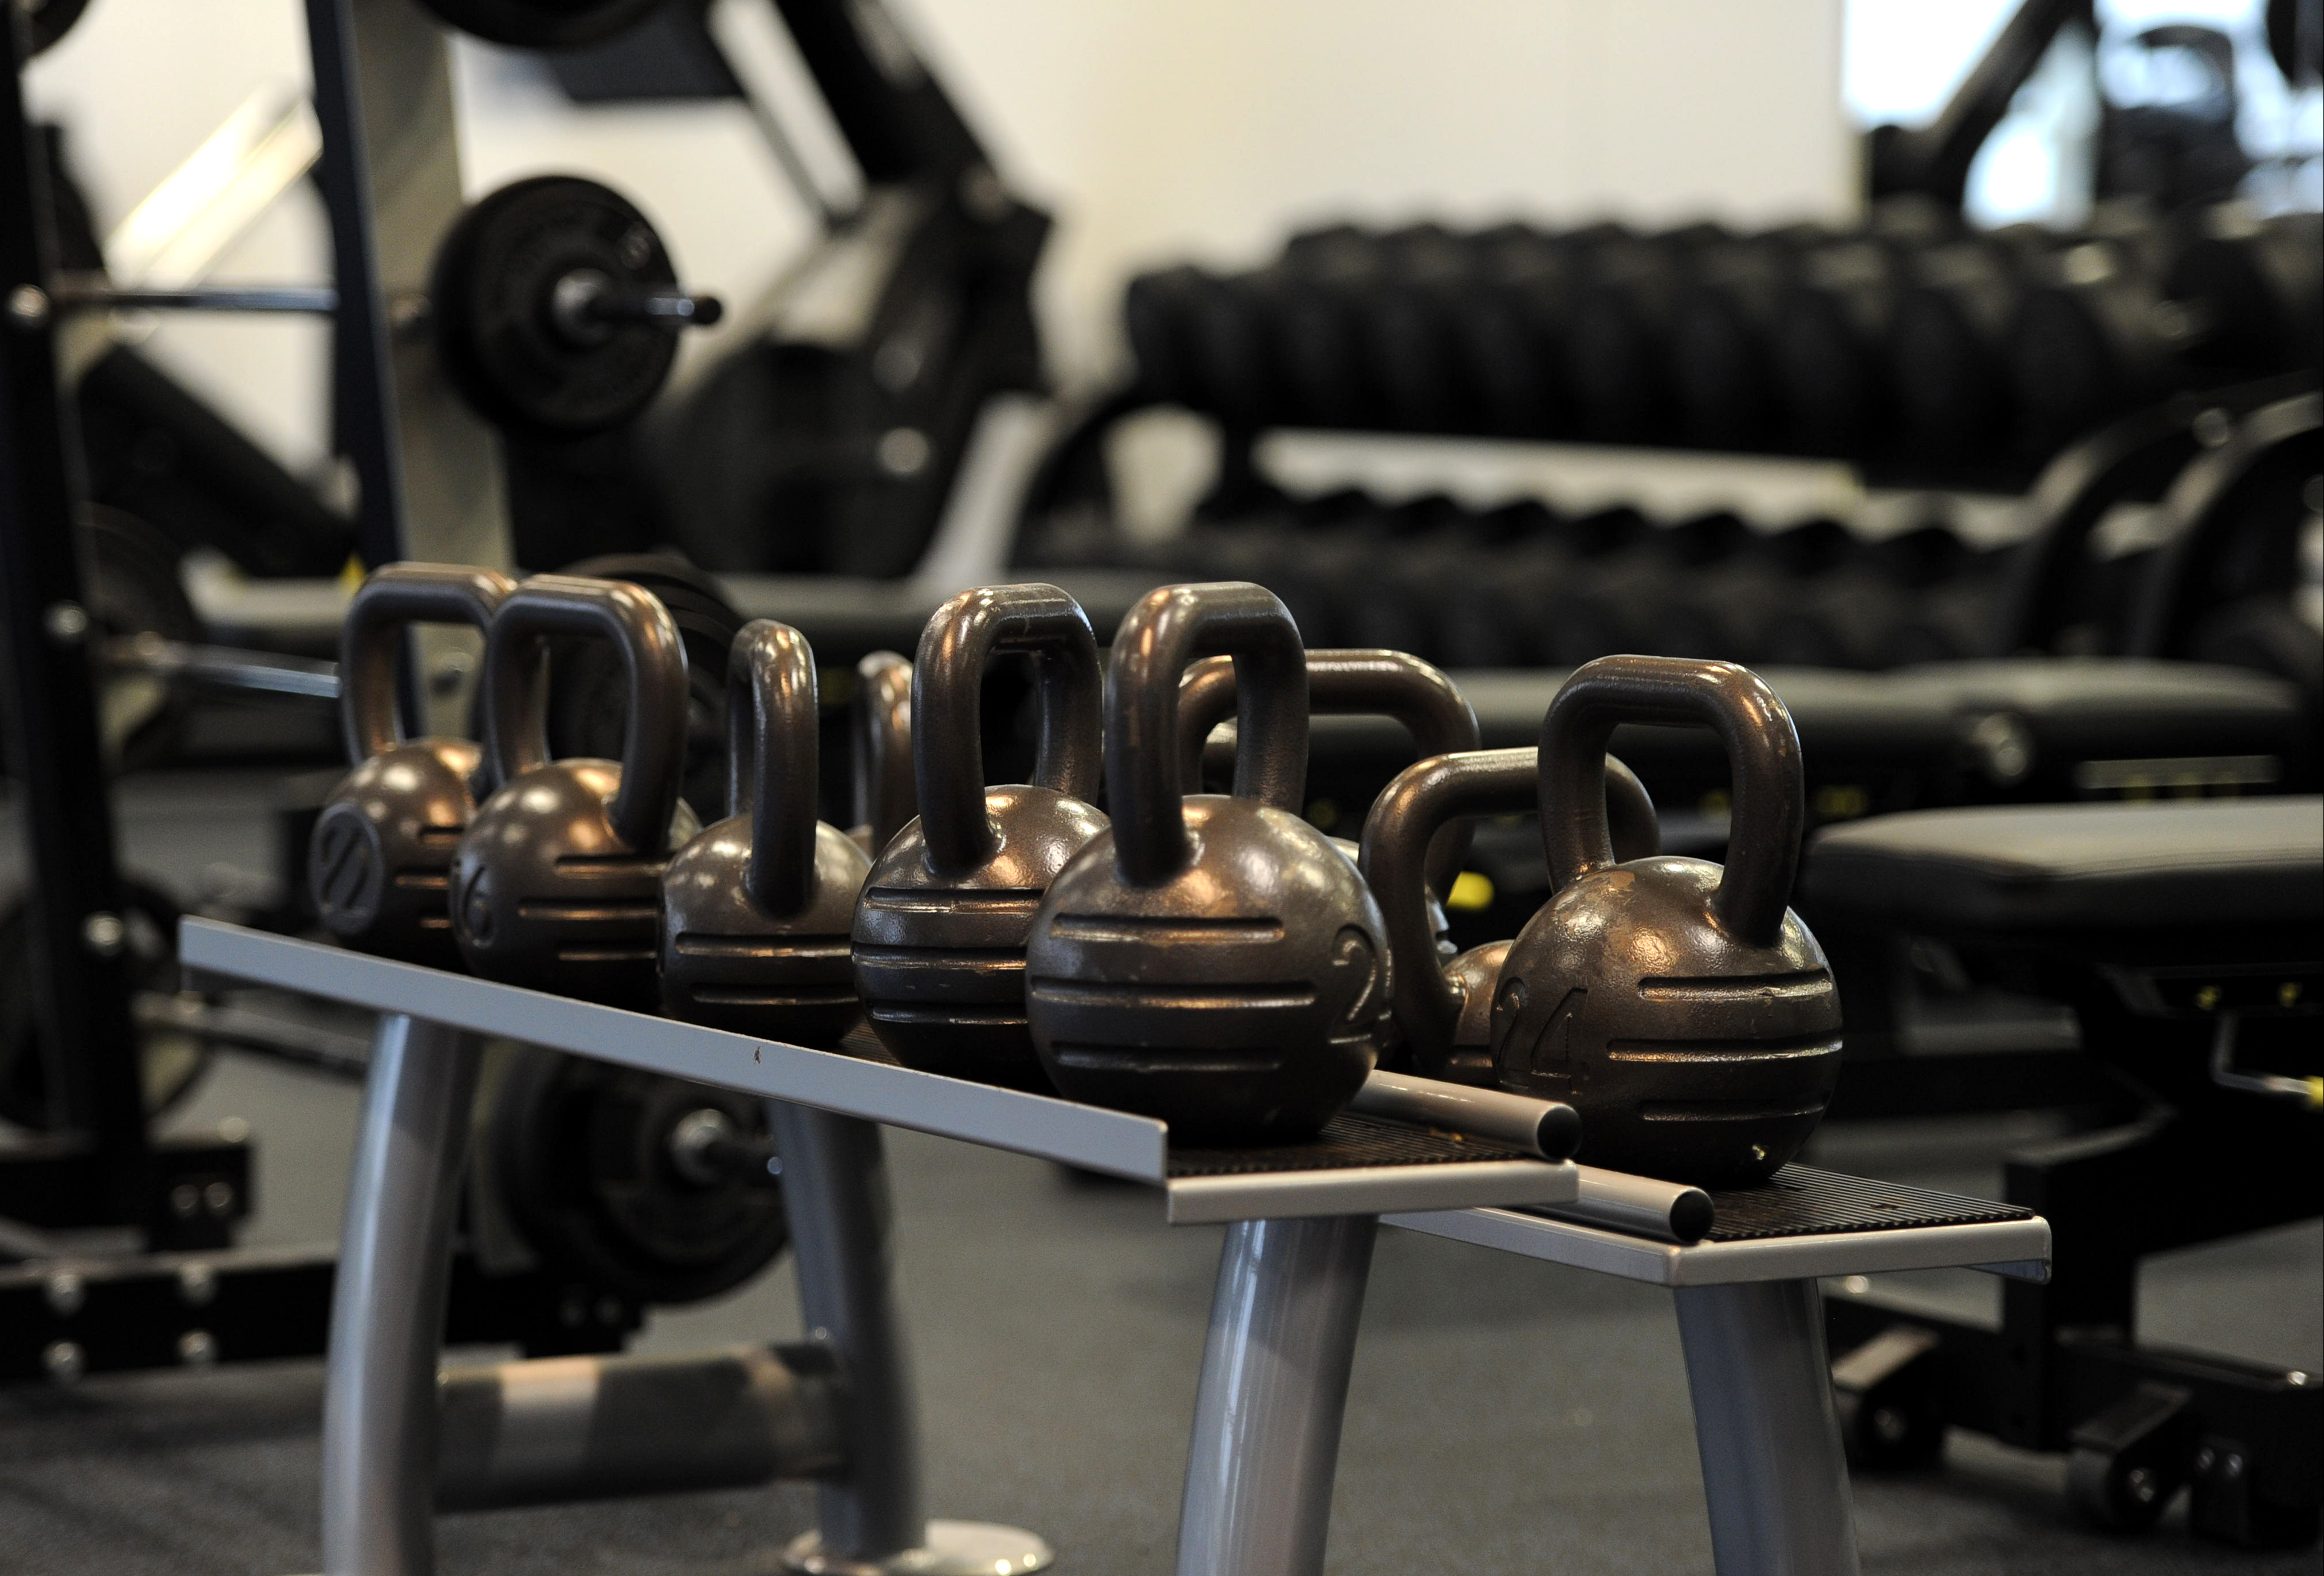 A general view of gym equipment